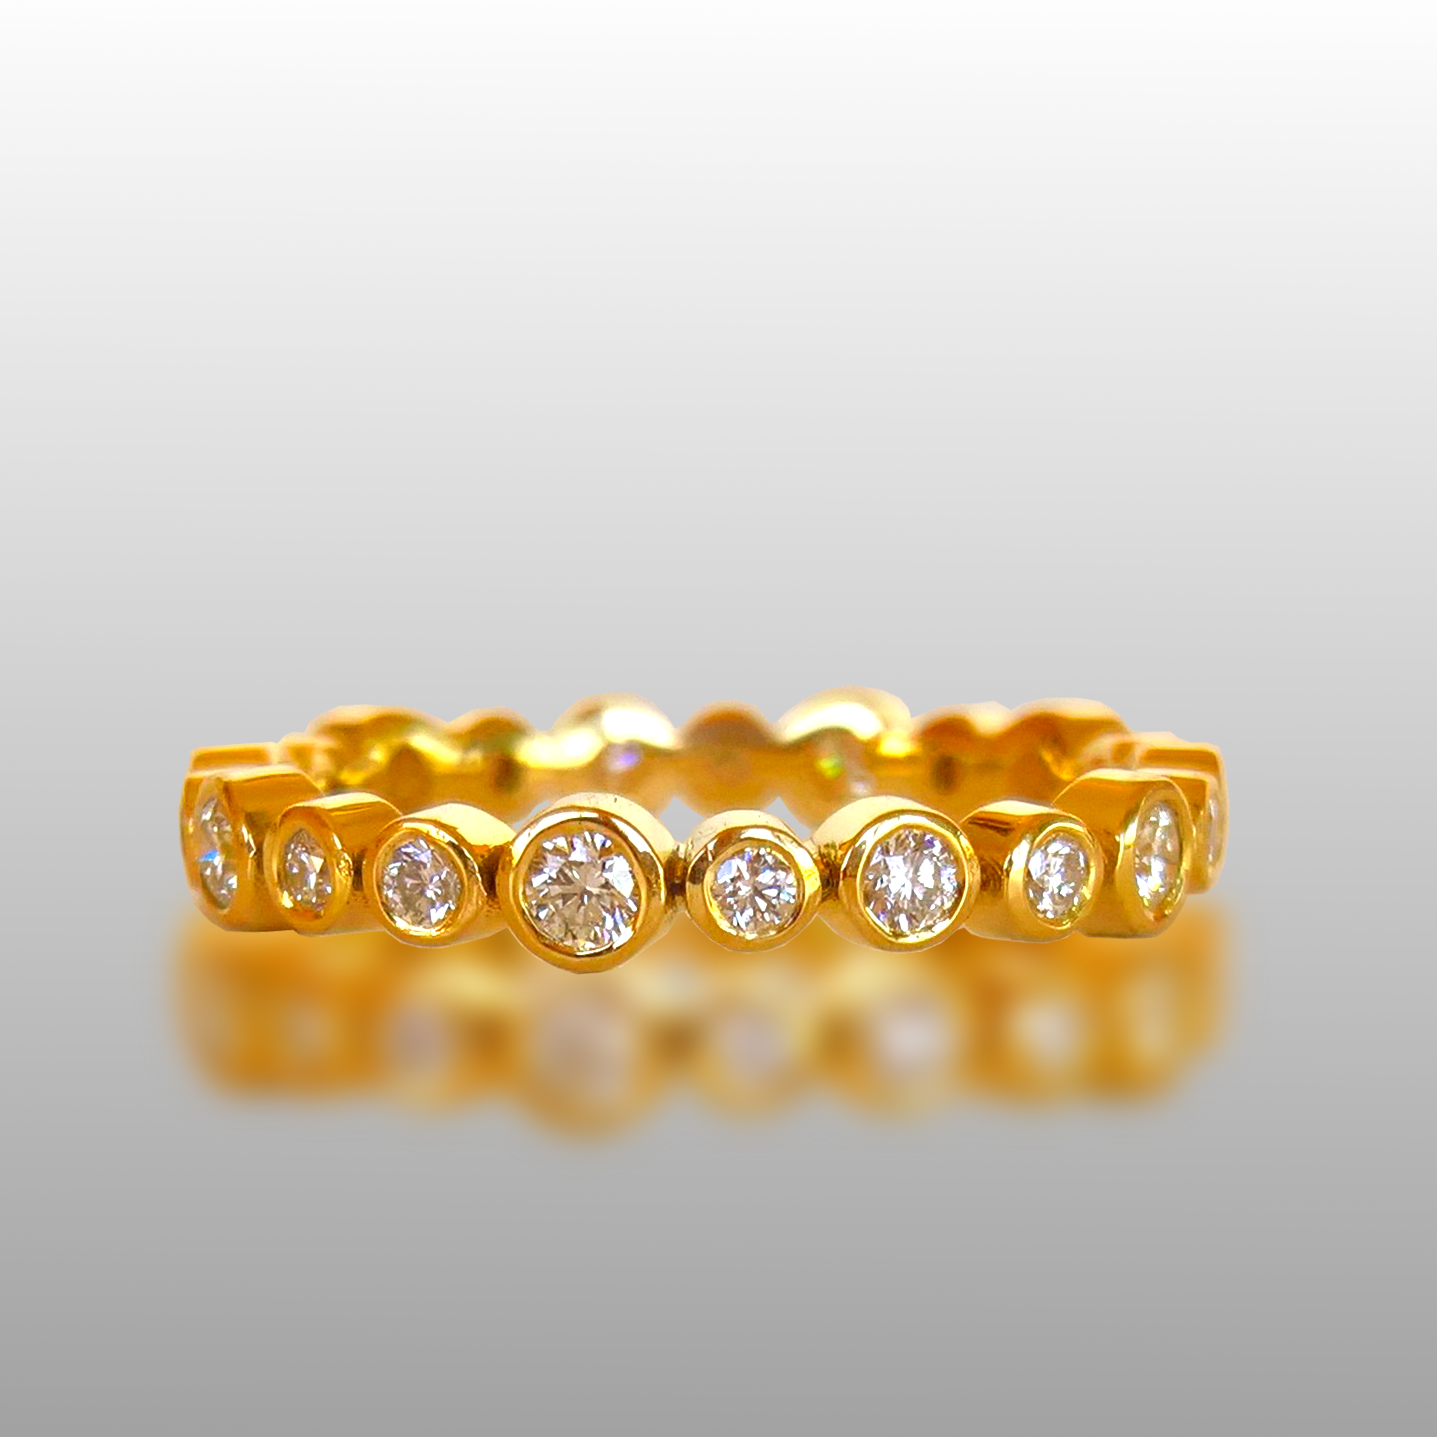 Diamond Eternity Engagement Ring 'Momenti' (Perfect for Stacking) by Pratima Design Fine Art Jewelry